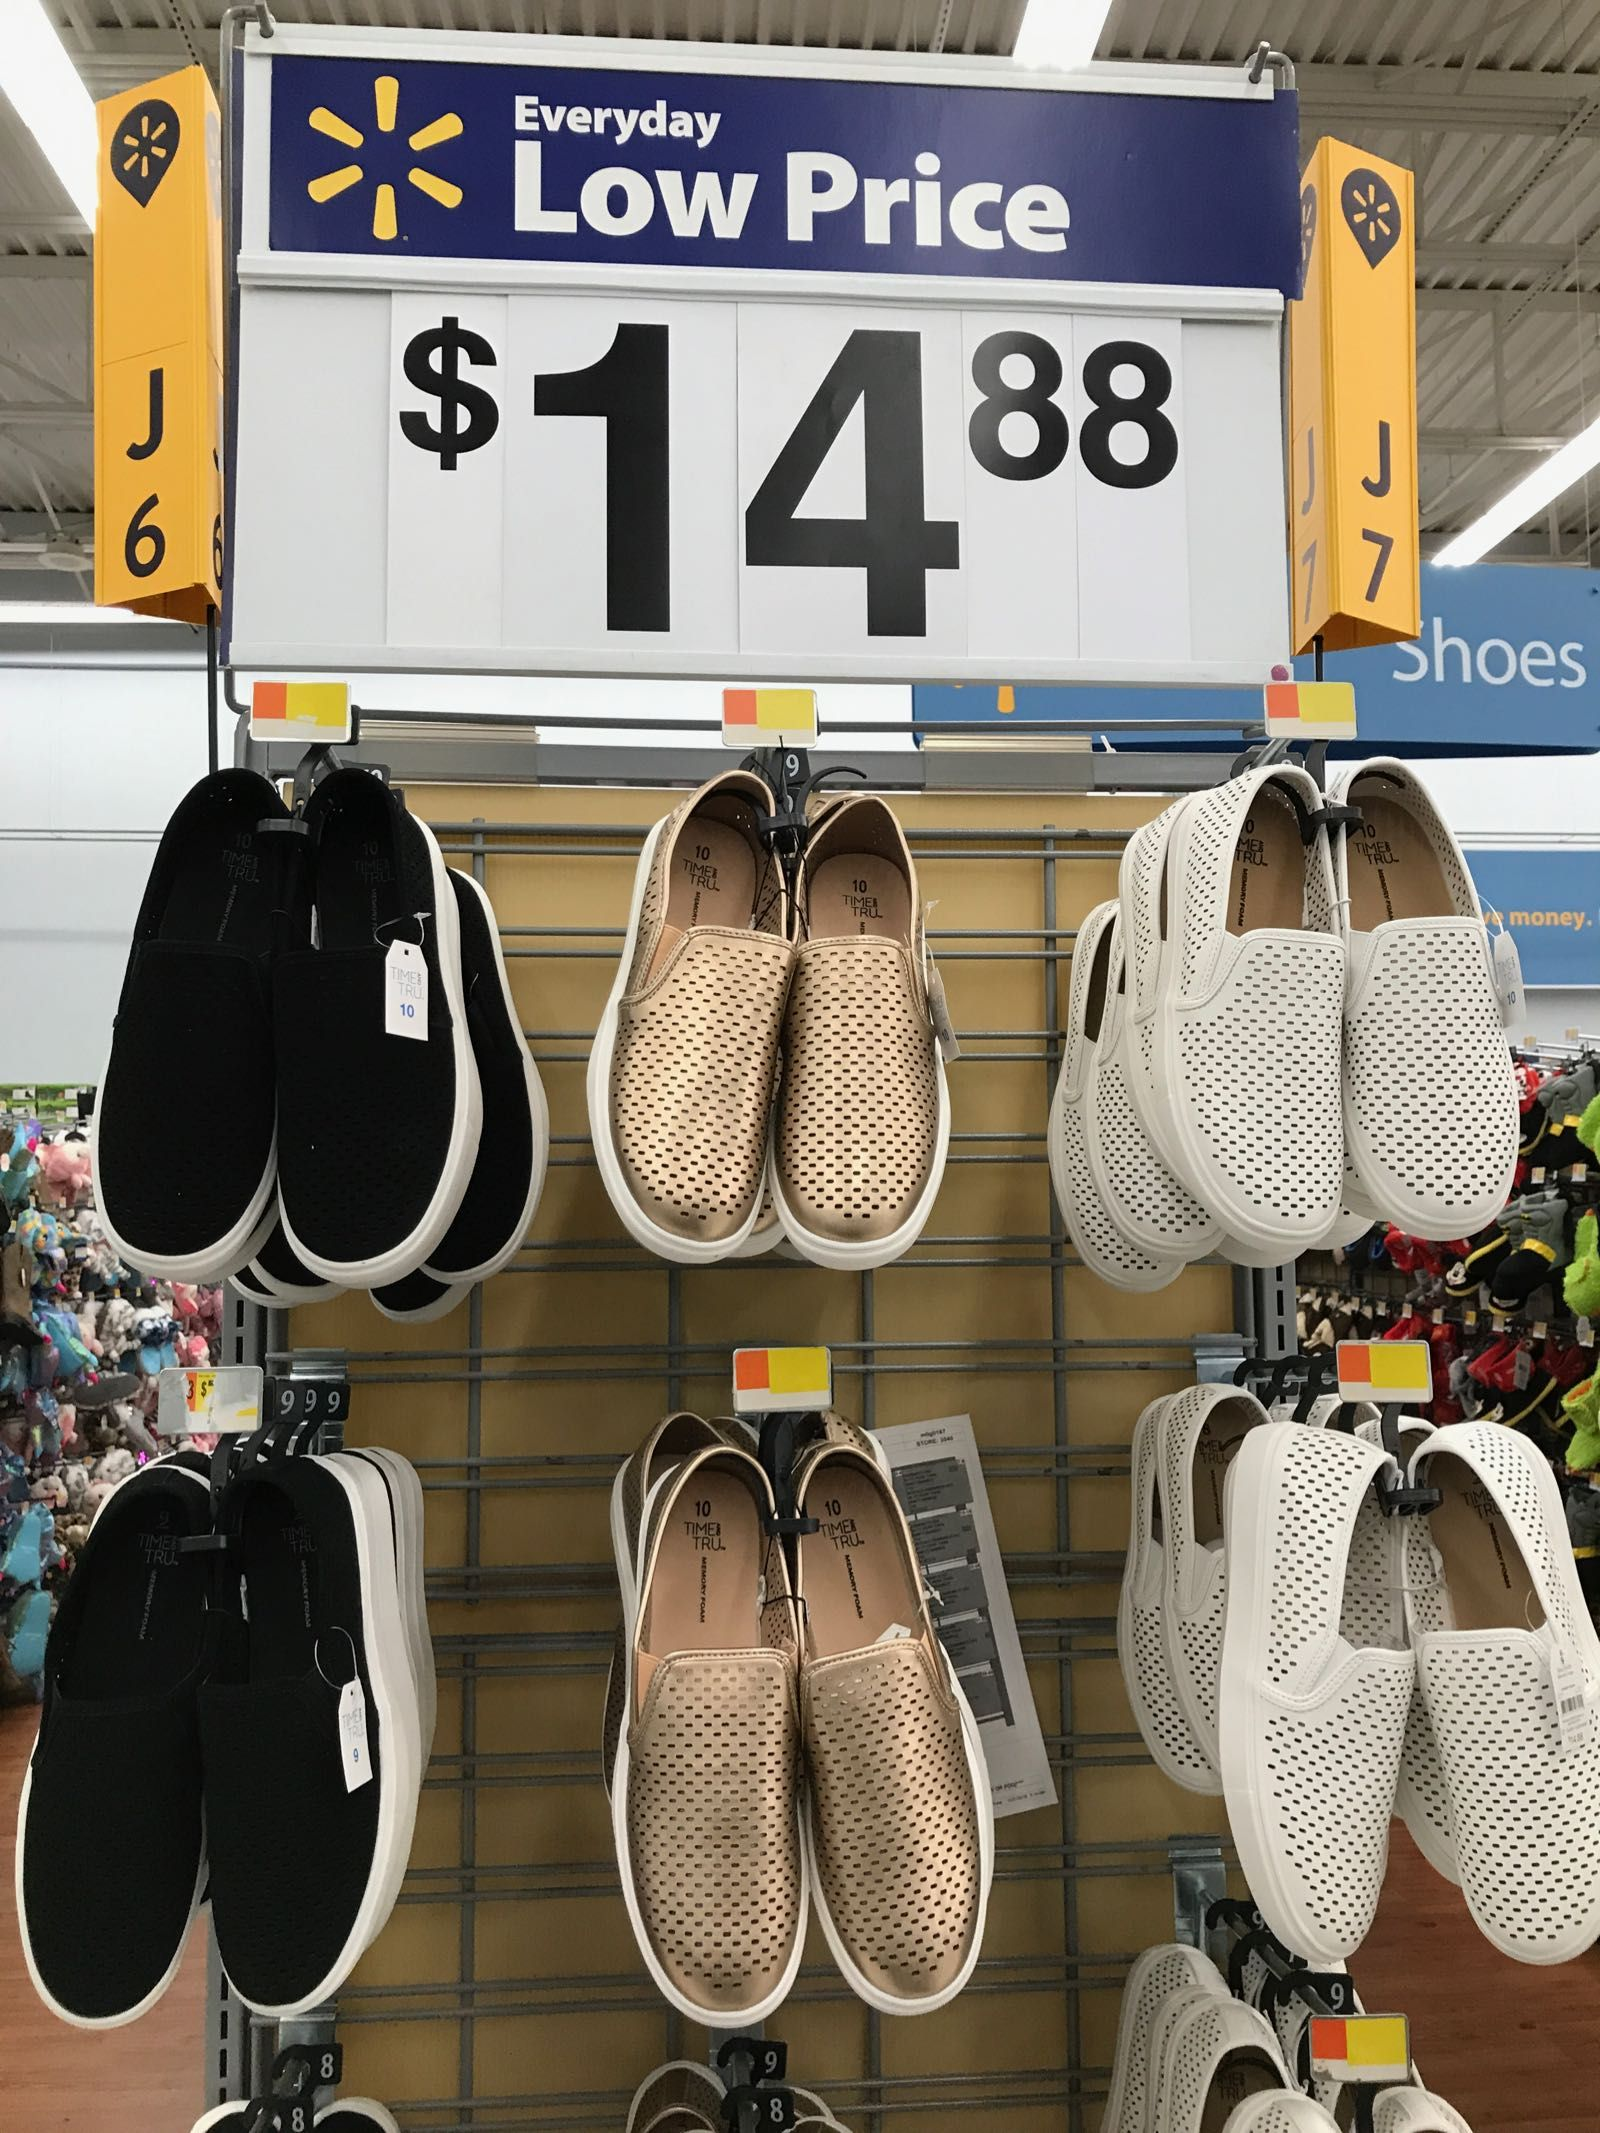 Off The Rack Spring Clothes At Walmart 2019 Walmart Outfits Walmart Fashion Womens Summer Shoes